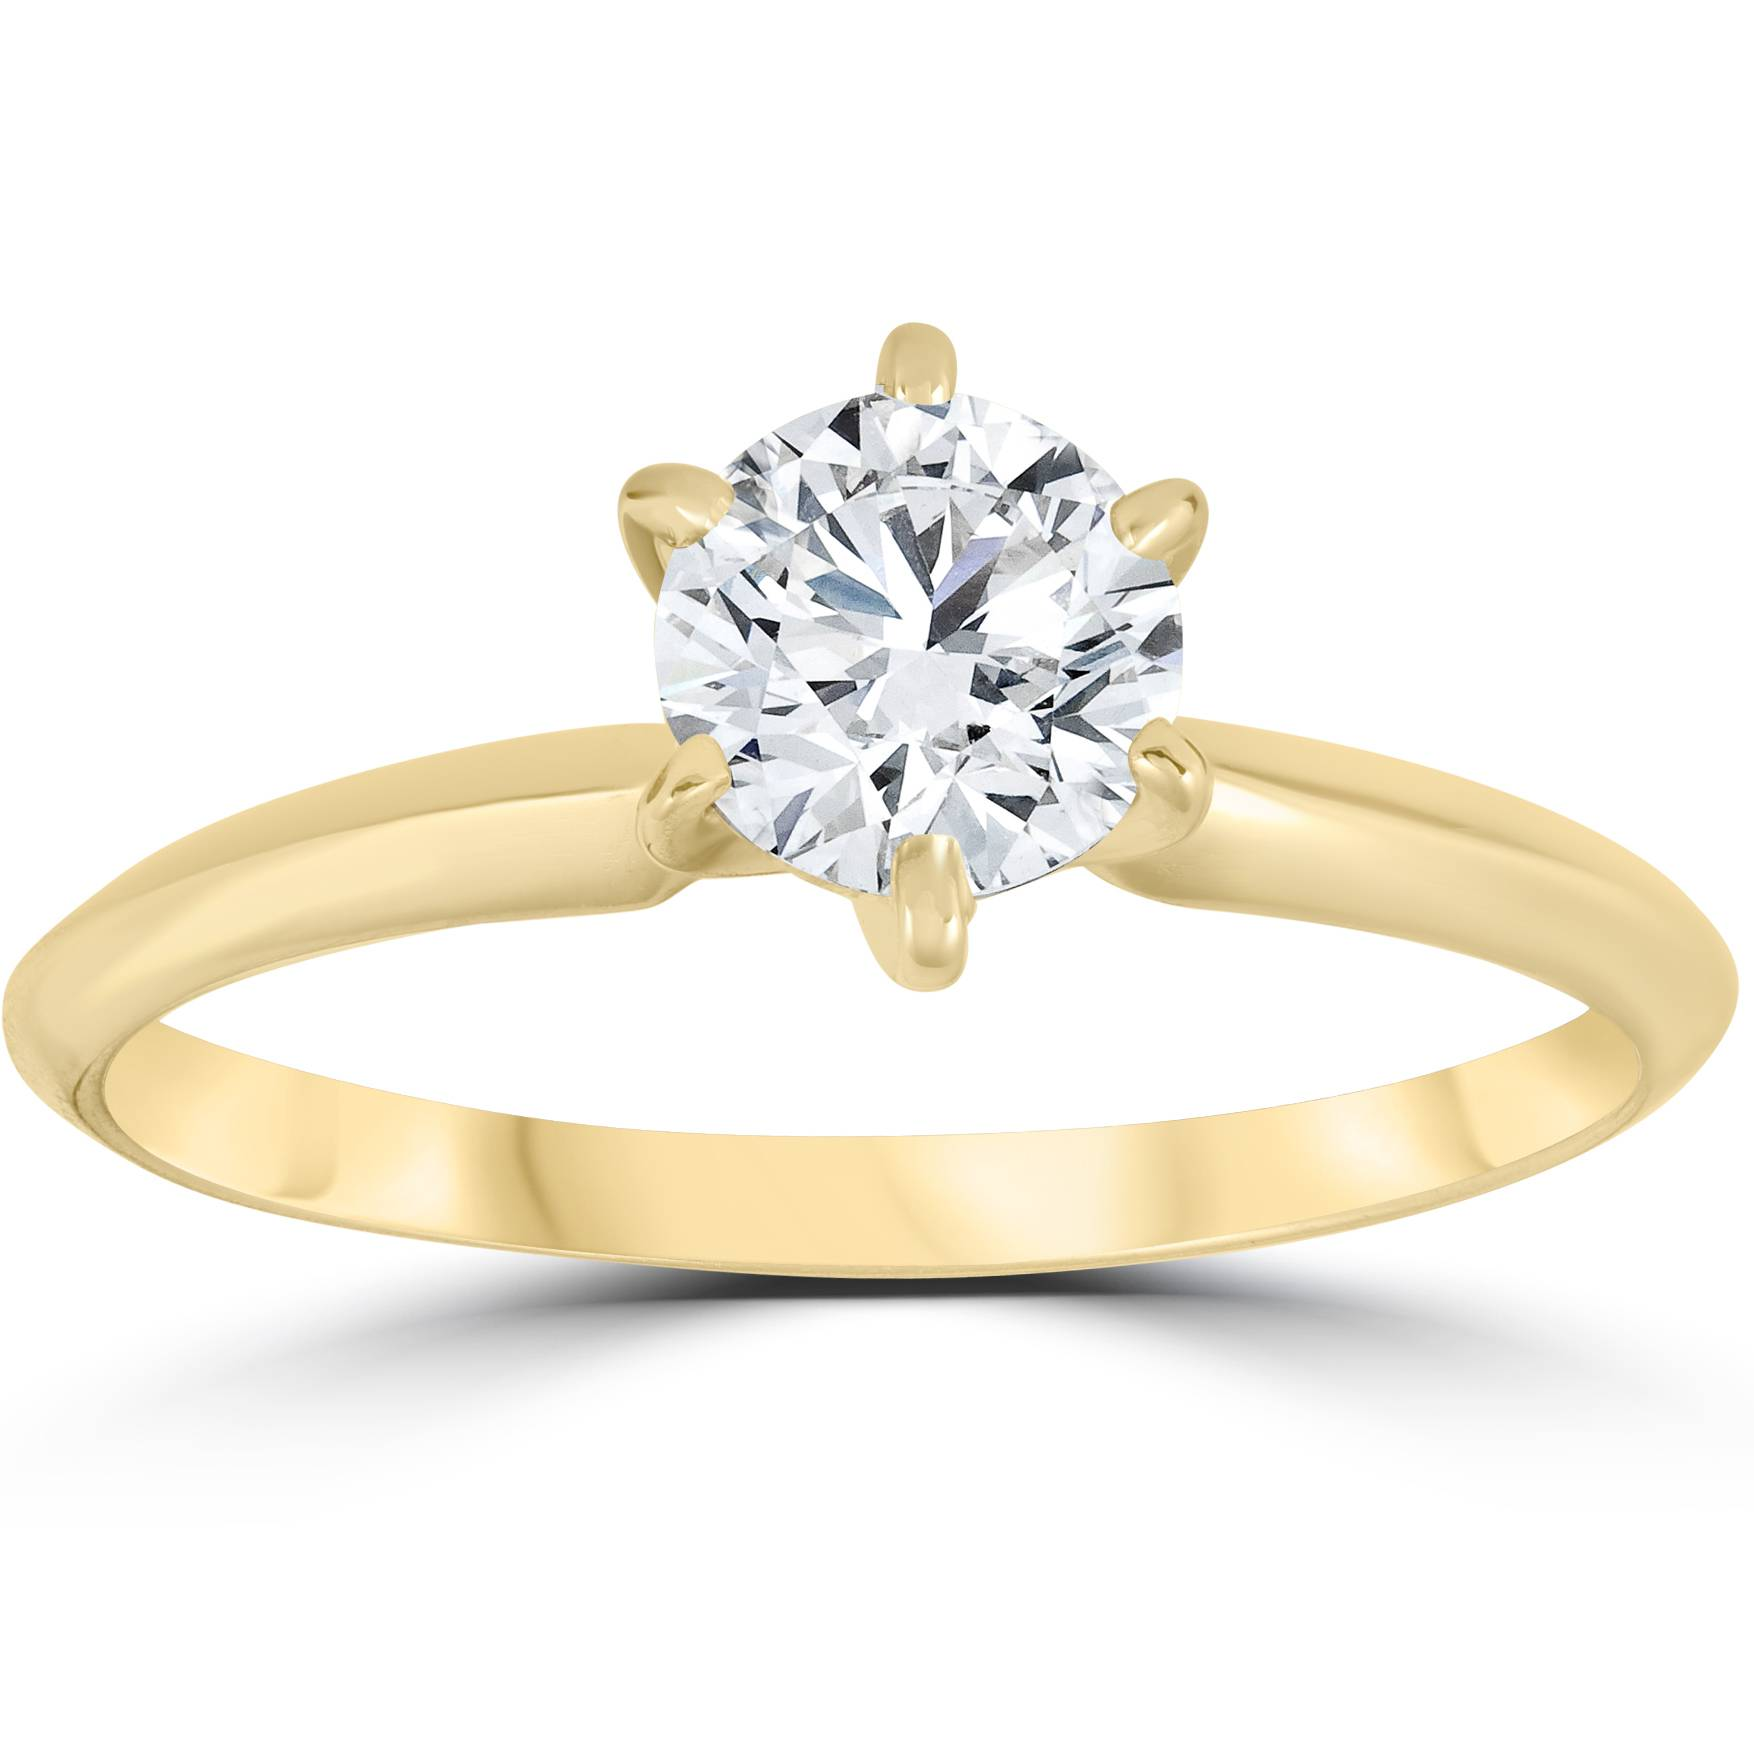 14k Yellow Gold 3/4ct Round Solitaire Diamond Engagement